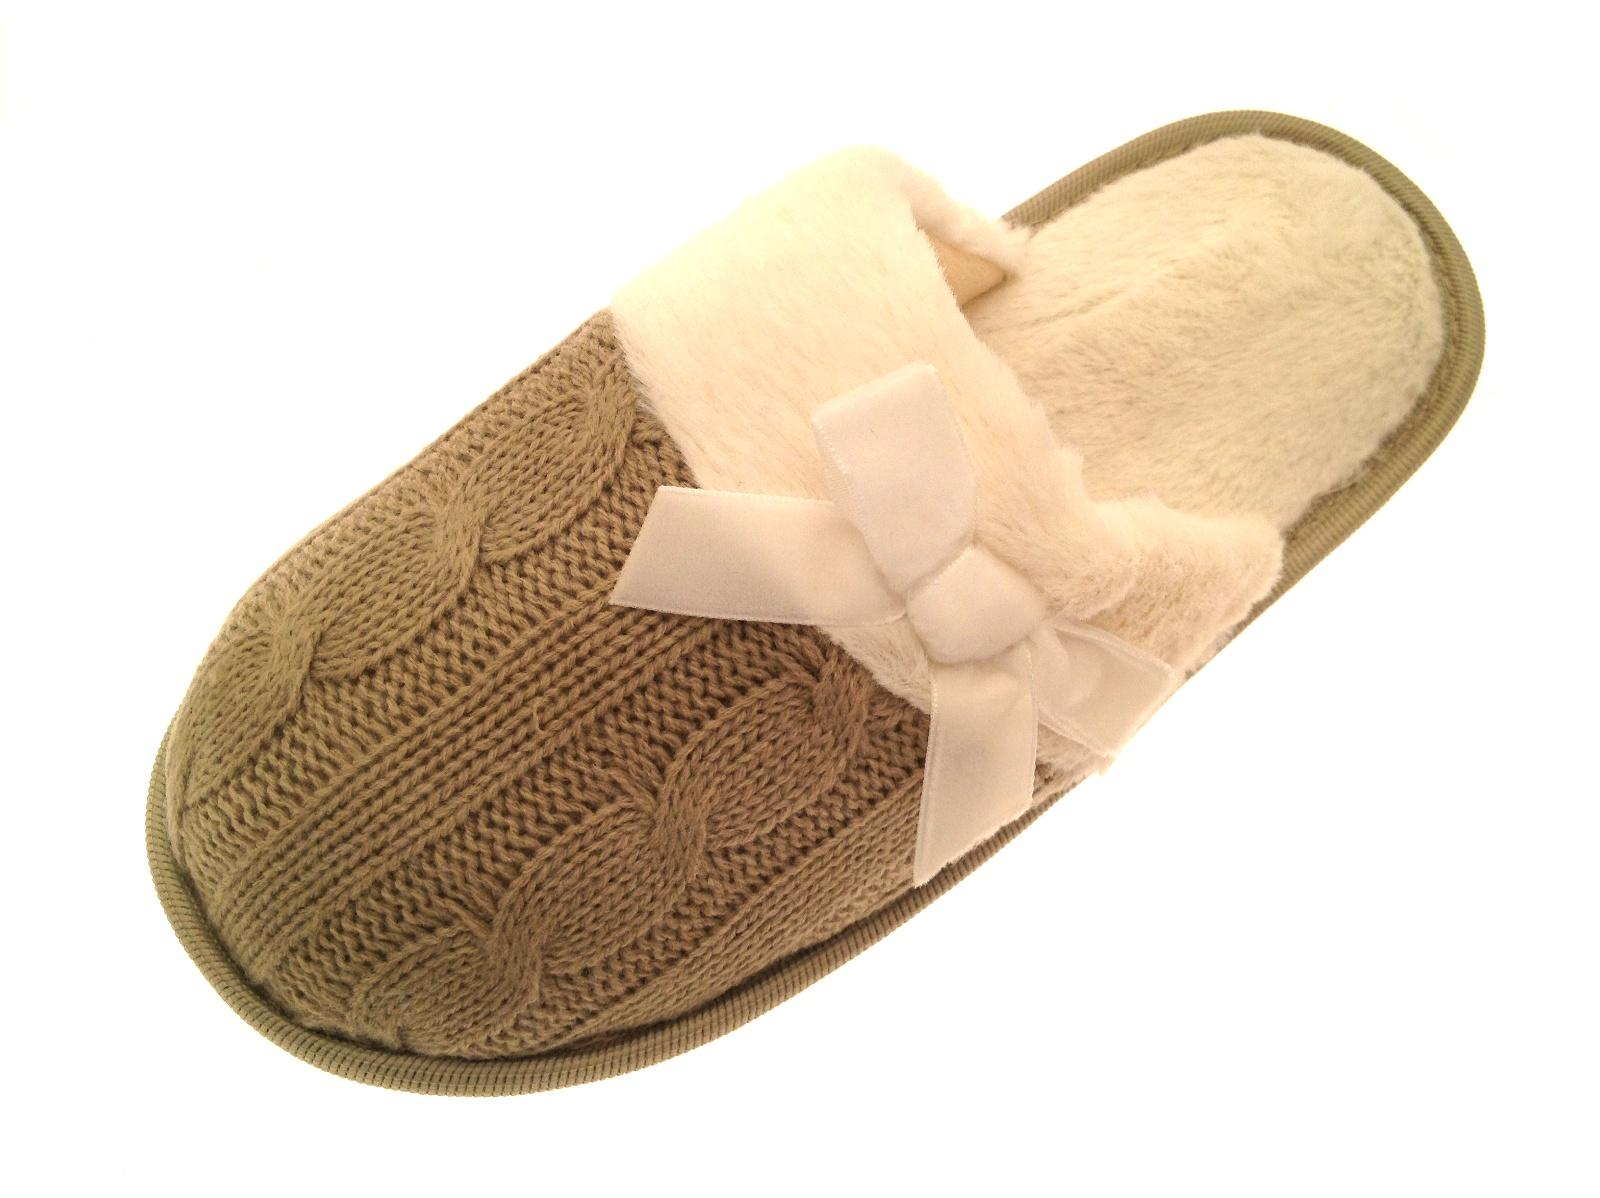 eternal-sv.tk: ladies slippers size From The Community. COMFY AND WARM: A pair of ladies house slippers that will treat your Ofoot Women's Cotton Memory Foam Washable Anti-Slip Indoor Slippers. by Ofoot. $ - $ $ 20 $ 23 99 Prime. FREE Shipping on eligible orders.